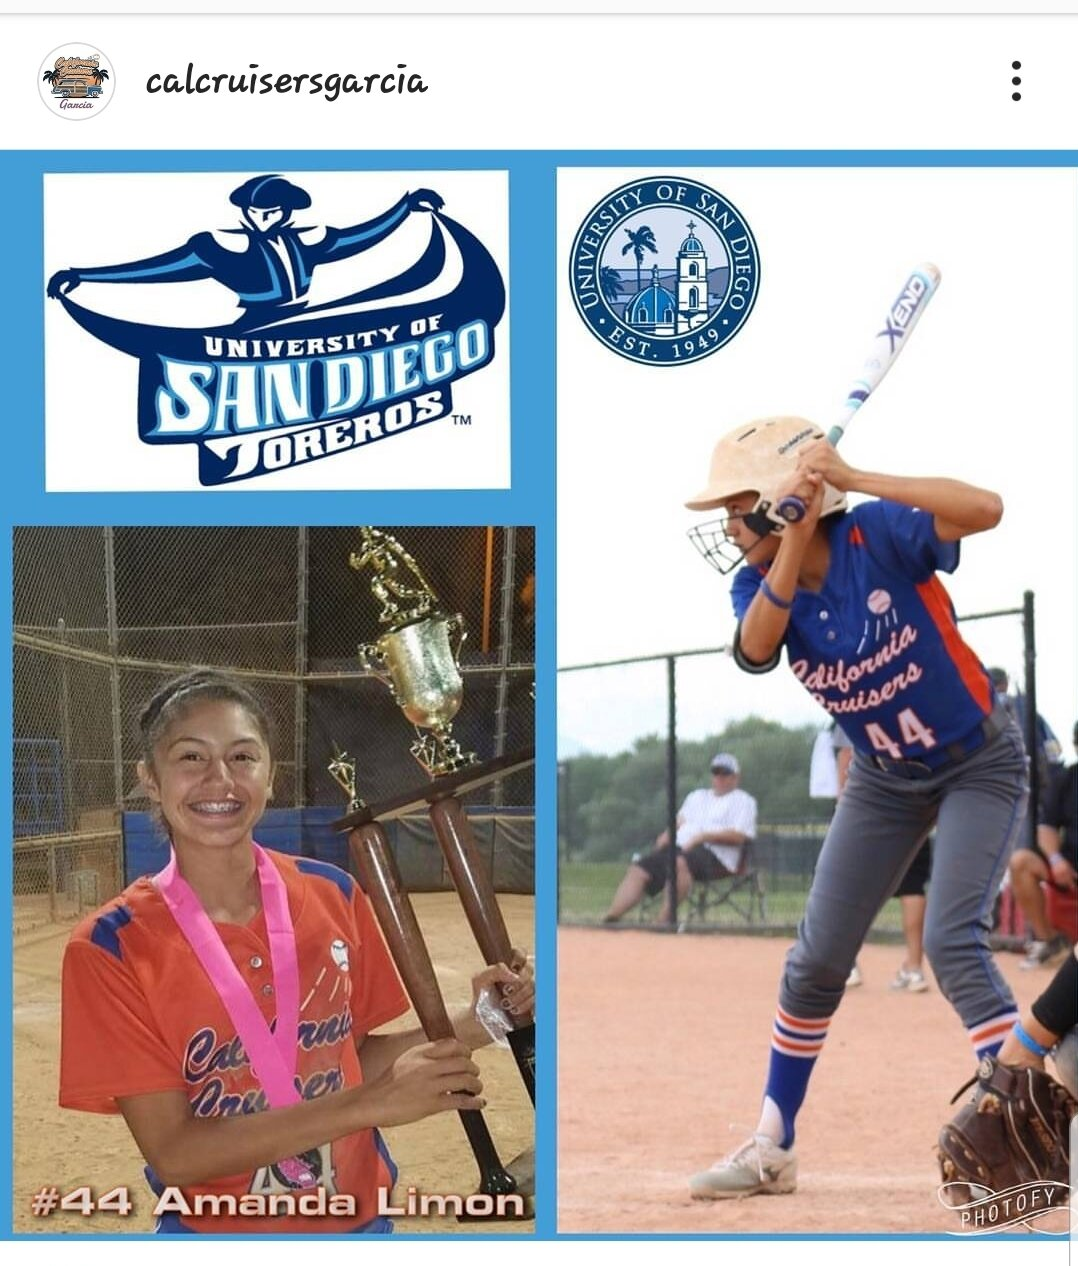 #44 AMANDA LIMON   Highlight Video: Click on Image  Grad Year: 2020  Position(s): SS/OF  School: Charter Oak  College: U of San Diego